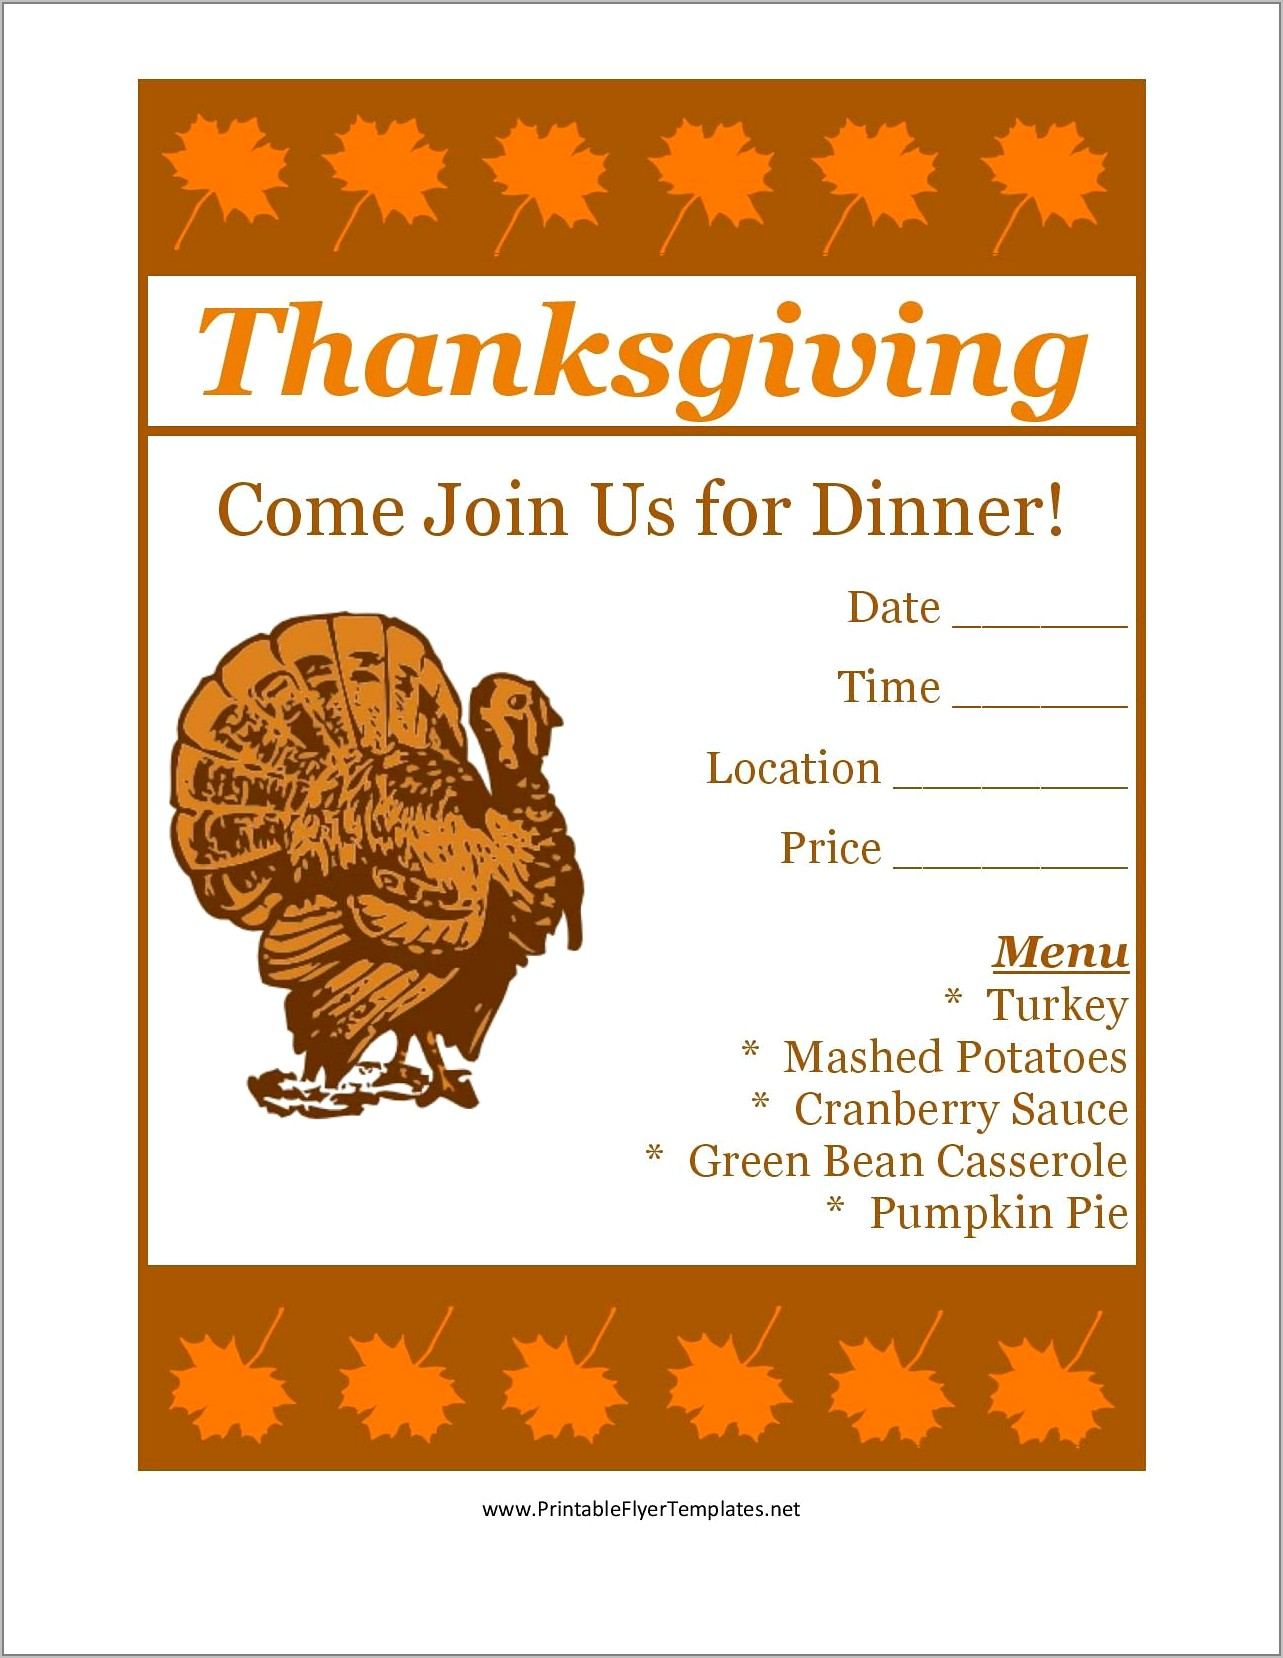 Thanksgiving Flyers Free Templates